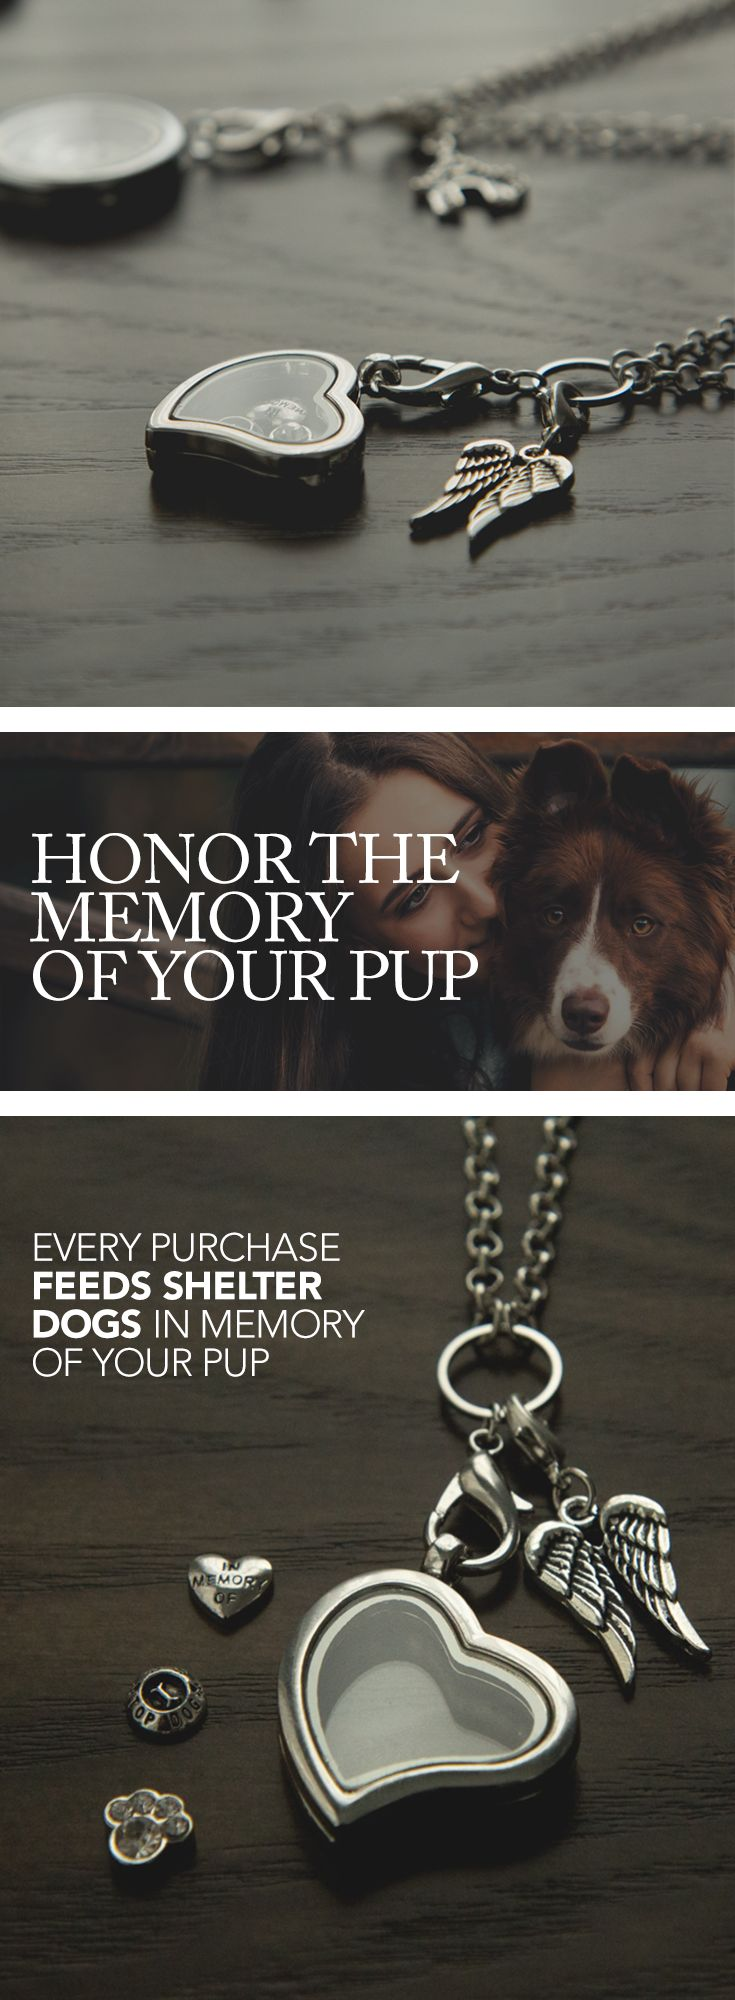 Furever™ Memorial Locket Set: Gives 10 Meals To Shelter Dogs In Honor of Your Dog.  *Limited Quantity so get your order in now!